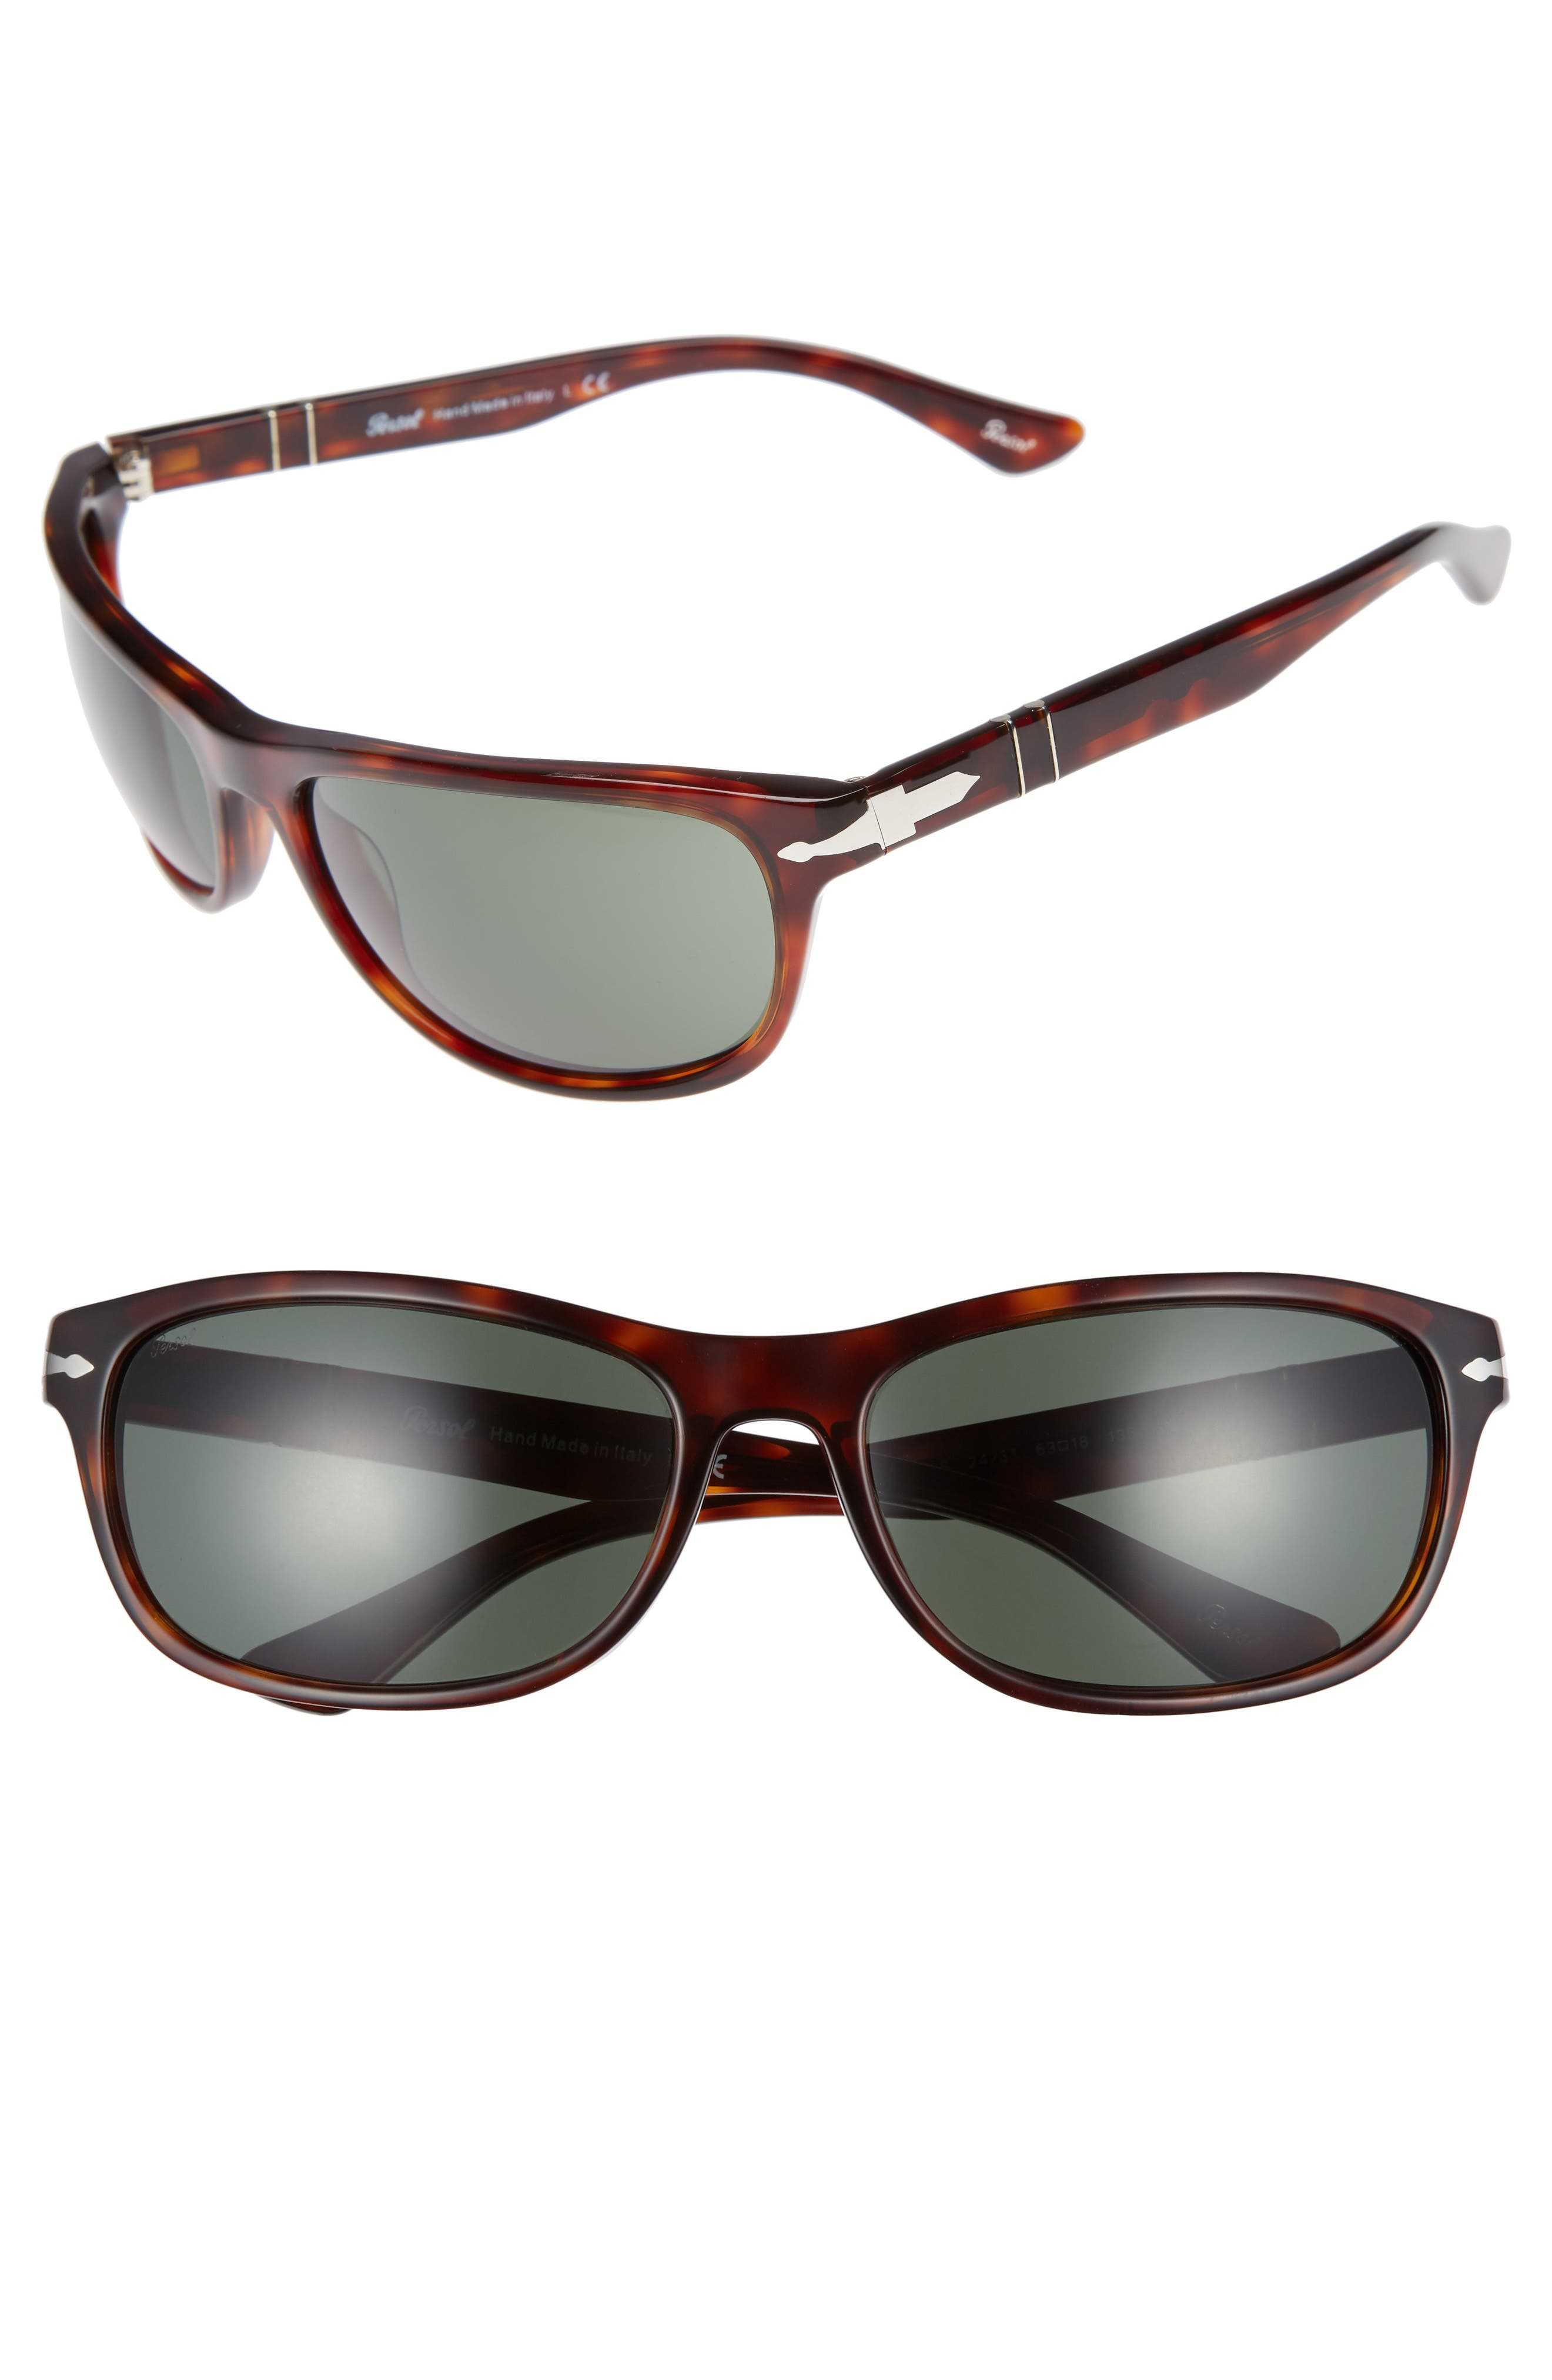 Officina 63mm Polarized Sungasses,                             Main thumbnail 1, color,                             219